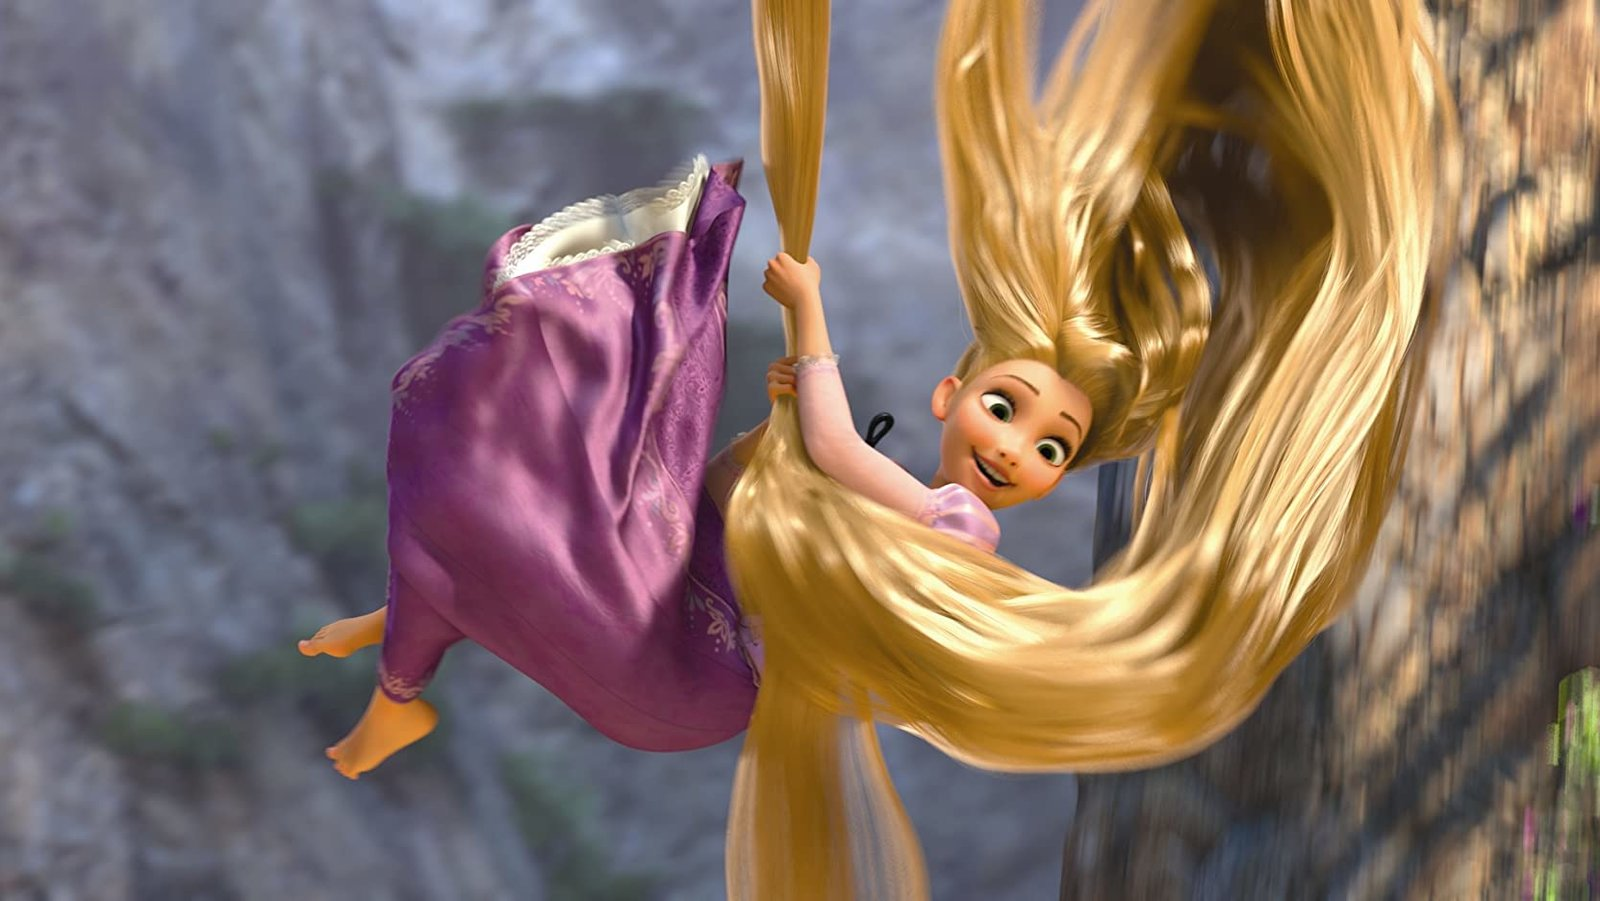 Q 5. WHAT DISNEY MOVIE IS THIS FROM?